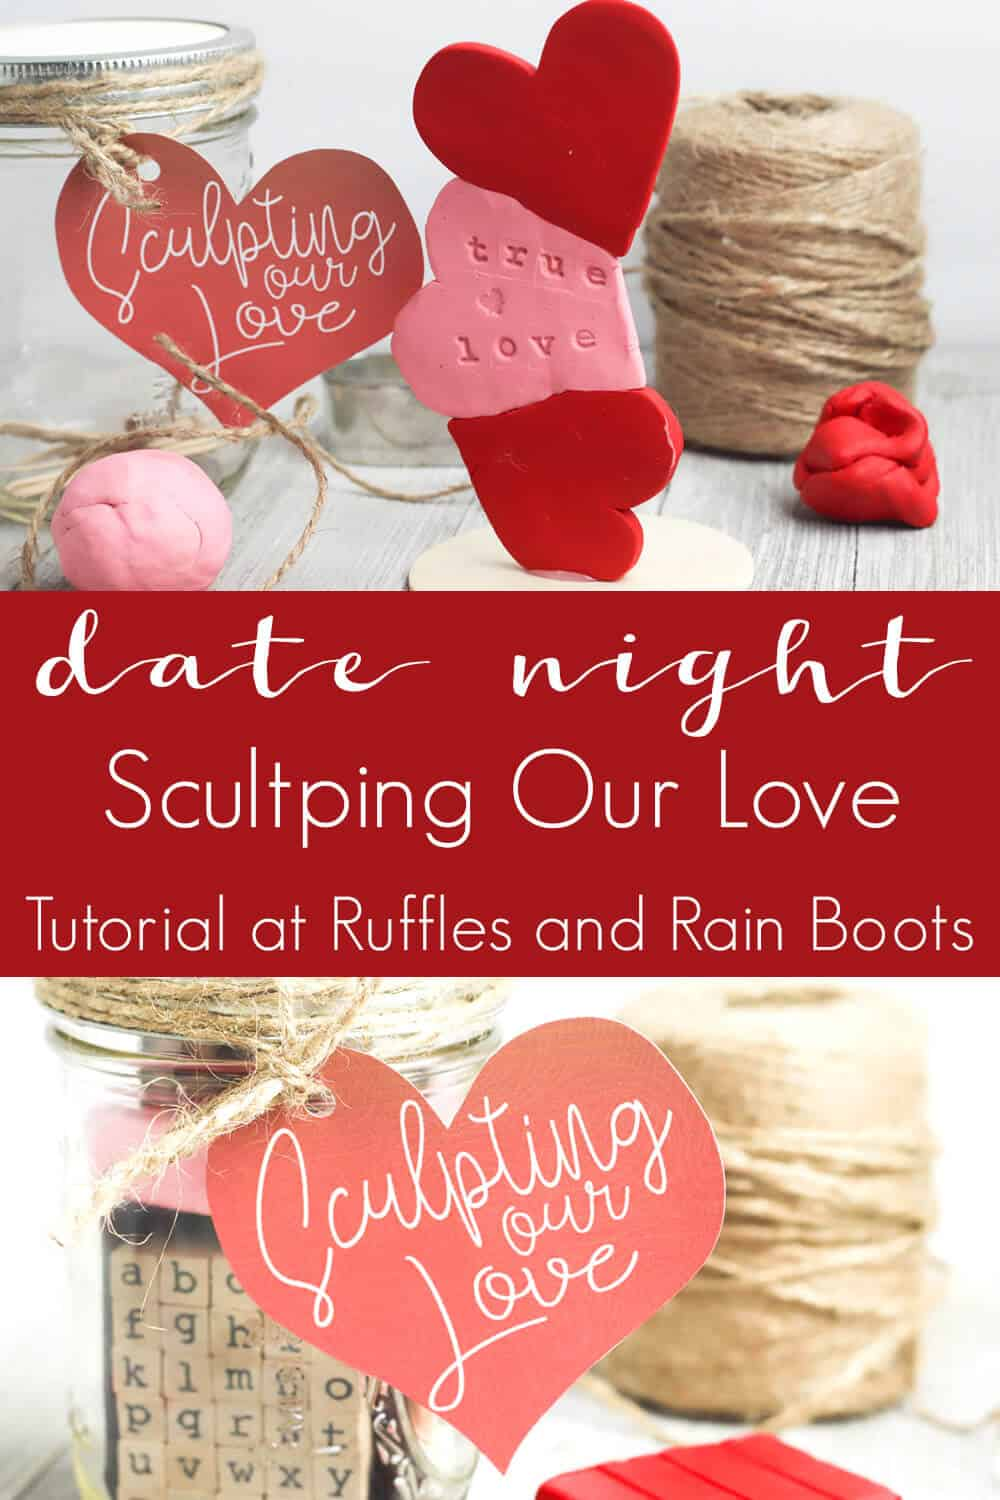 photo collage of date night ideas for couple gift jar with text which reads date night sculpting our love